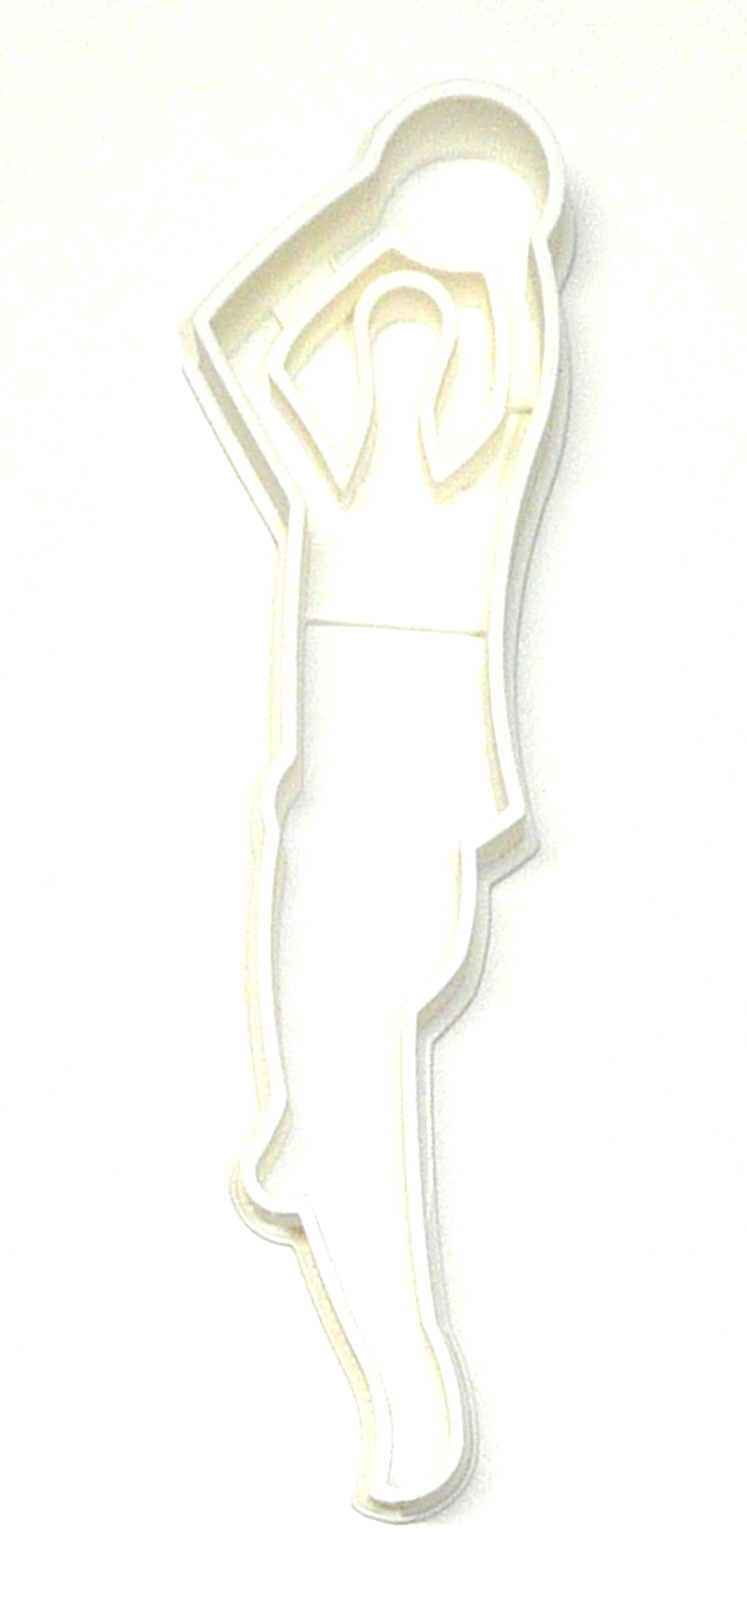 Primary image for Basketball Player Shooting Ball Jump Shot Athletics Cookie Cutter USA PR2415